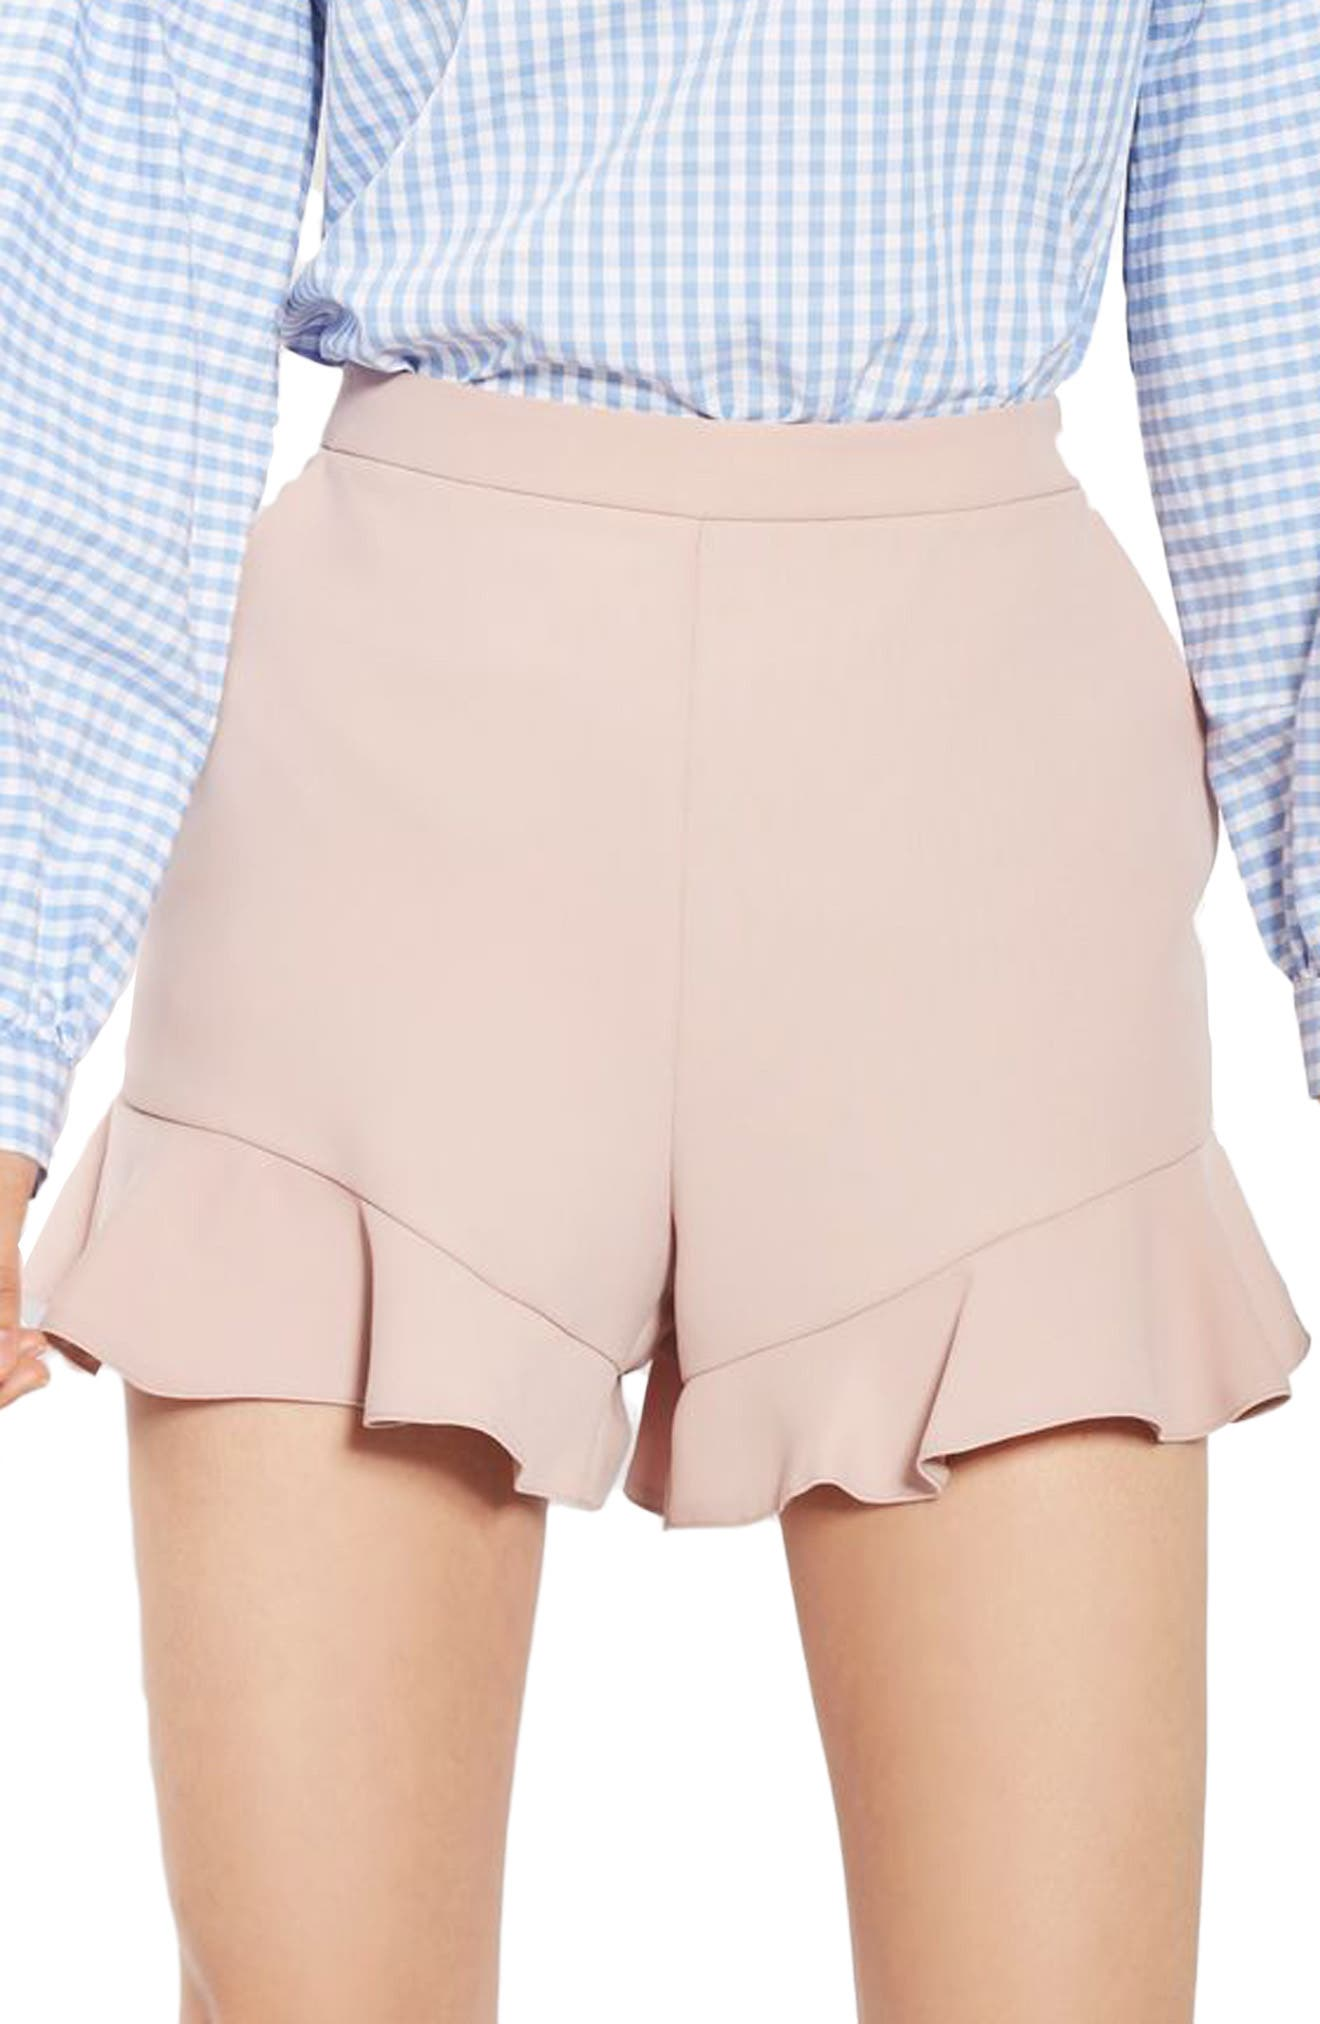 Alternate Image 1 Selected - Topshop Frill Hem Shorts